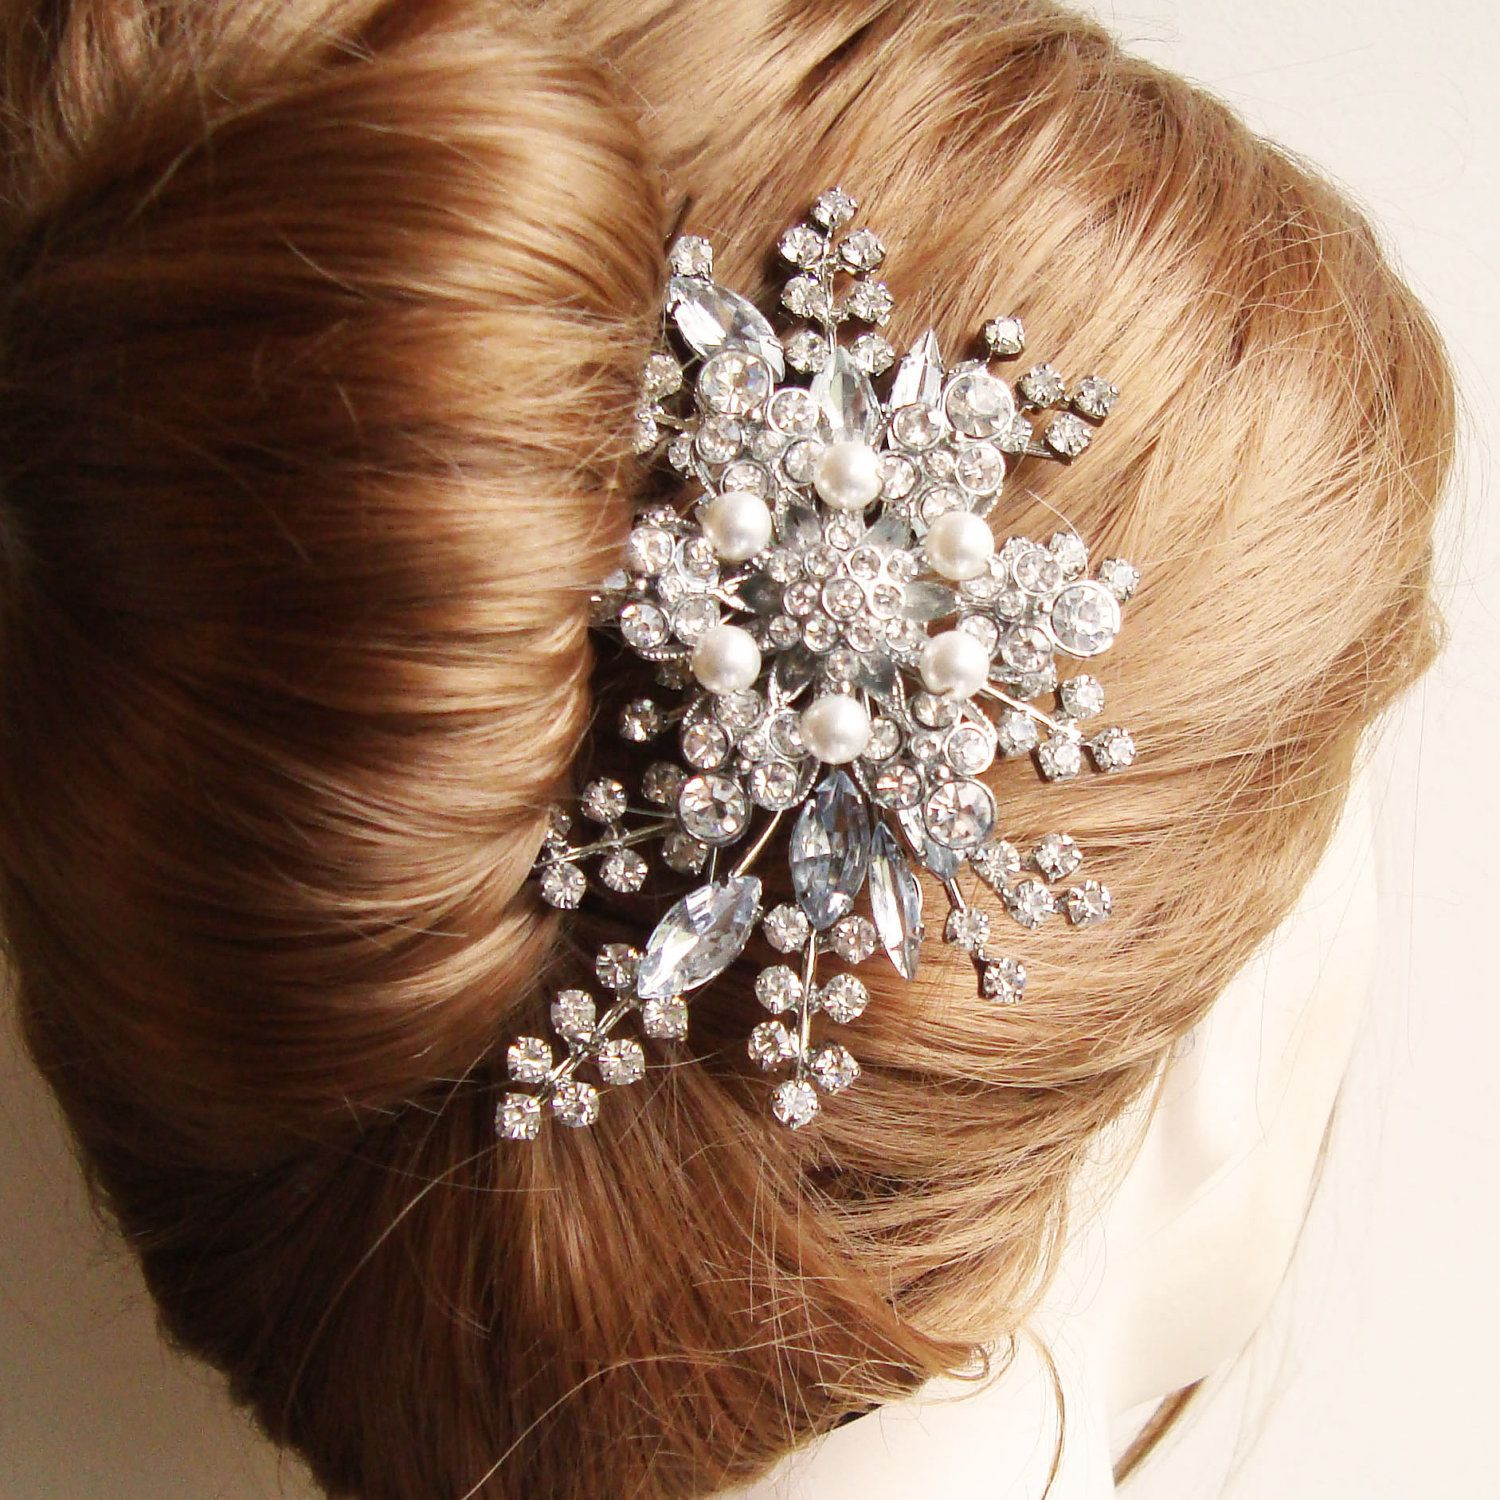 rhinestone hair comb, bridal hair comb, french twist comb, wedding